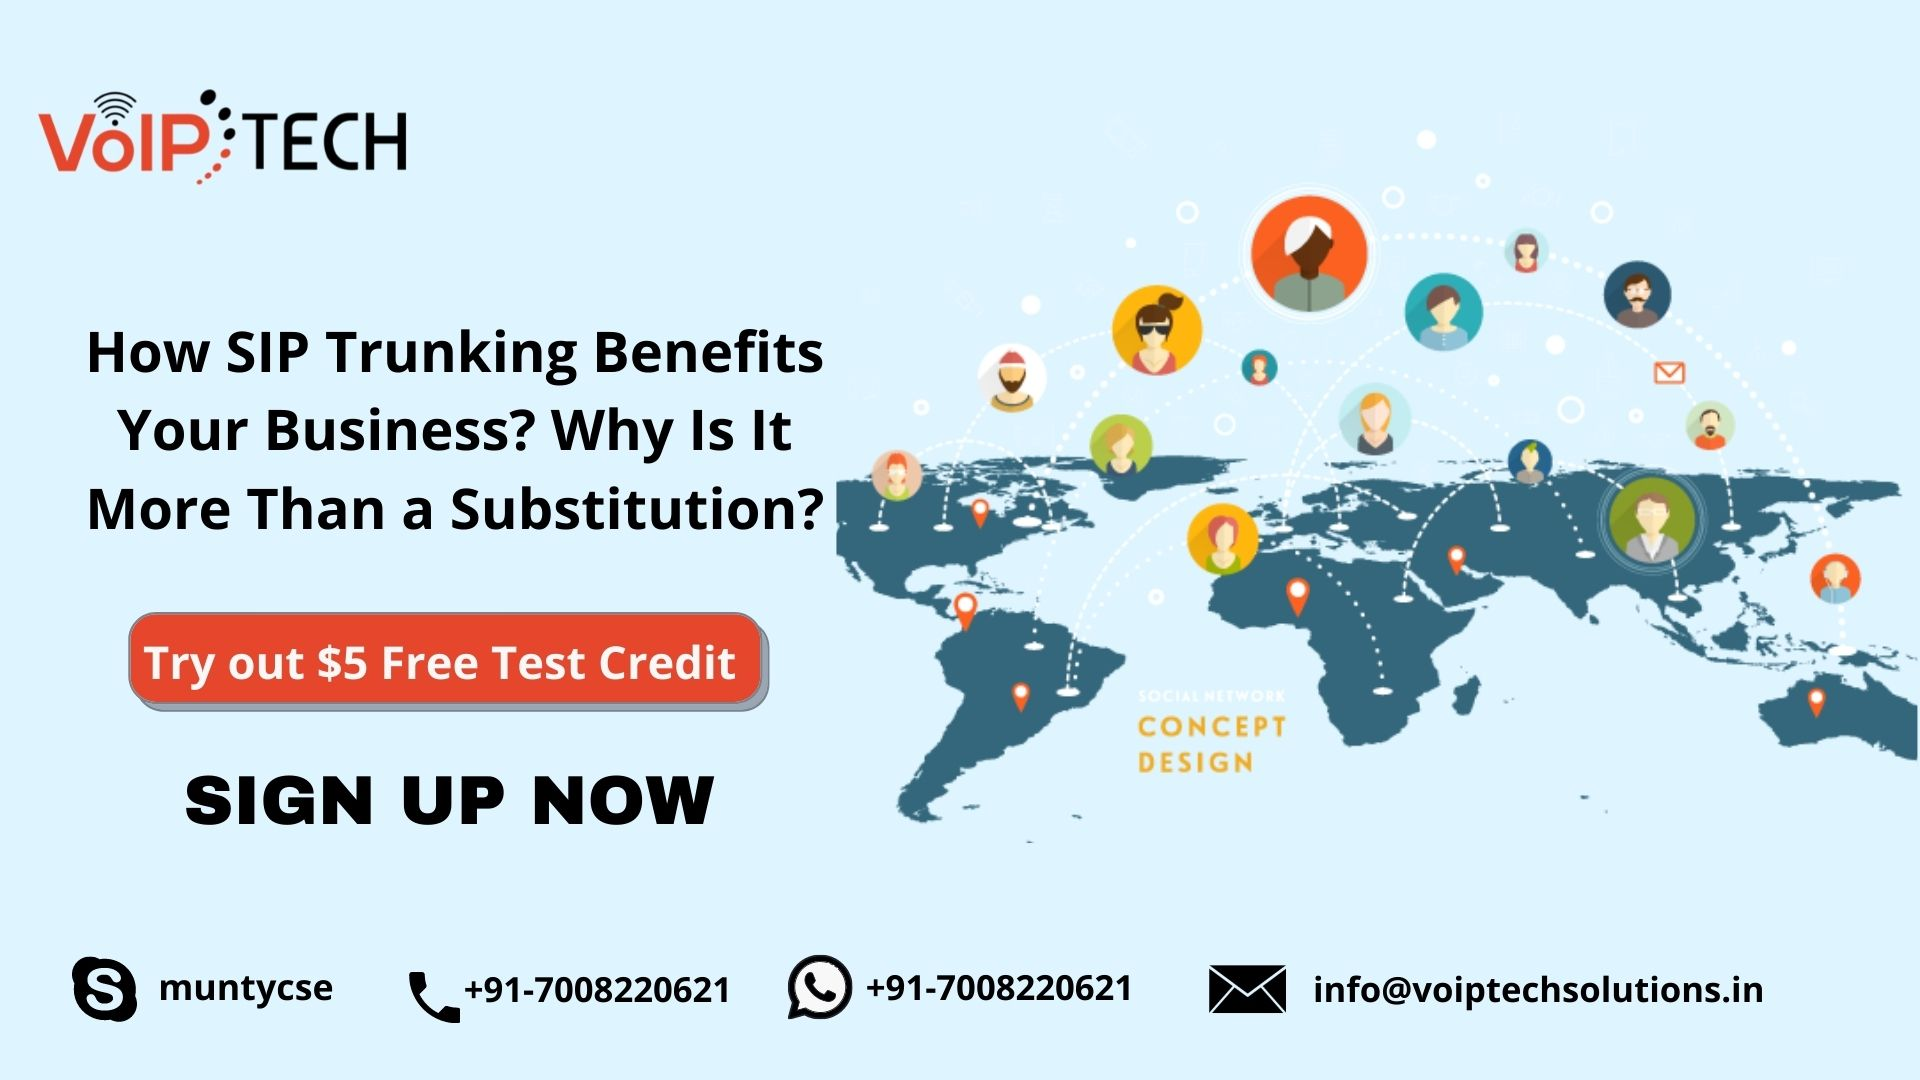 Sip Trunking, How SIP Trunking Benefits Your Business? Why Is It More Than a Substitution?, Exploring The VoIP Technology from Business Point of view. Pros & Cons! ,VoIP Business, VoIP tech solutions, vici dialer, virtual number, Voip Providers, voip services in india, best sip provider, business voip providers, VoIP Phone Numbers, voip minutes provider, top voip providers, voip minutes, International VoIP Provider